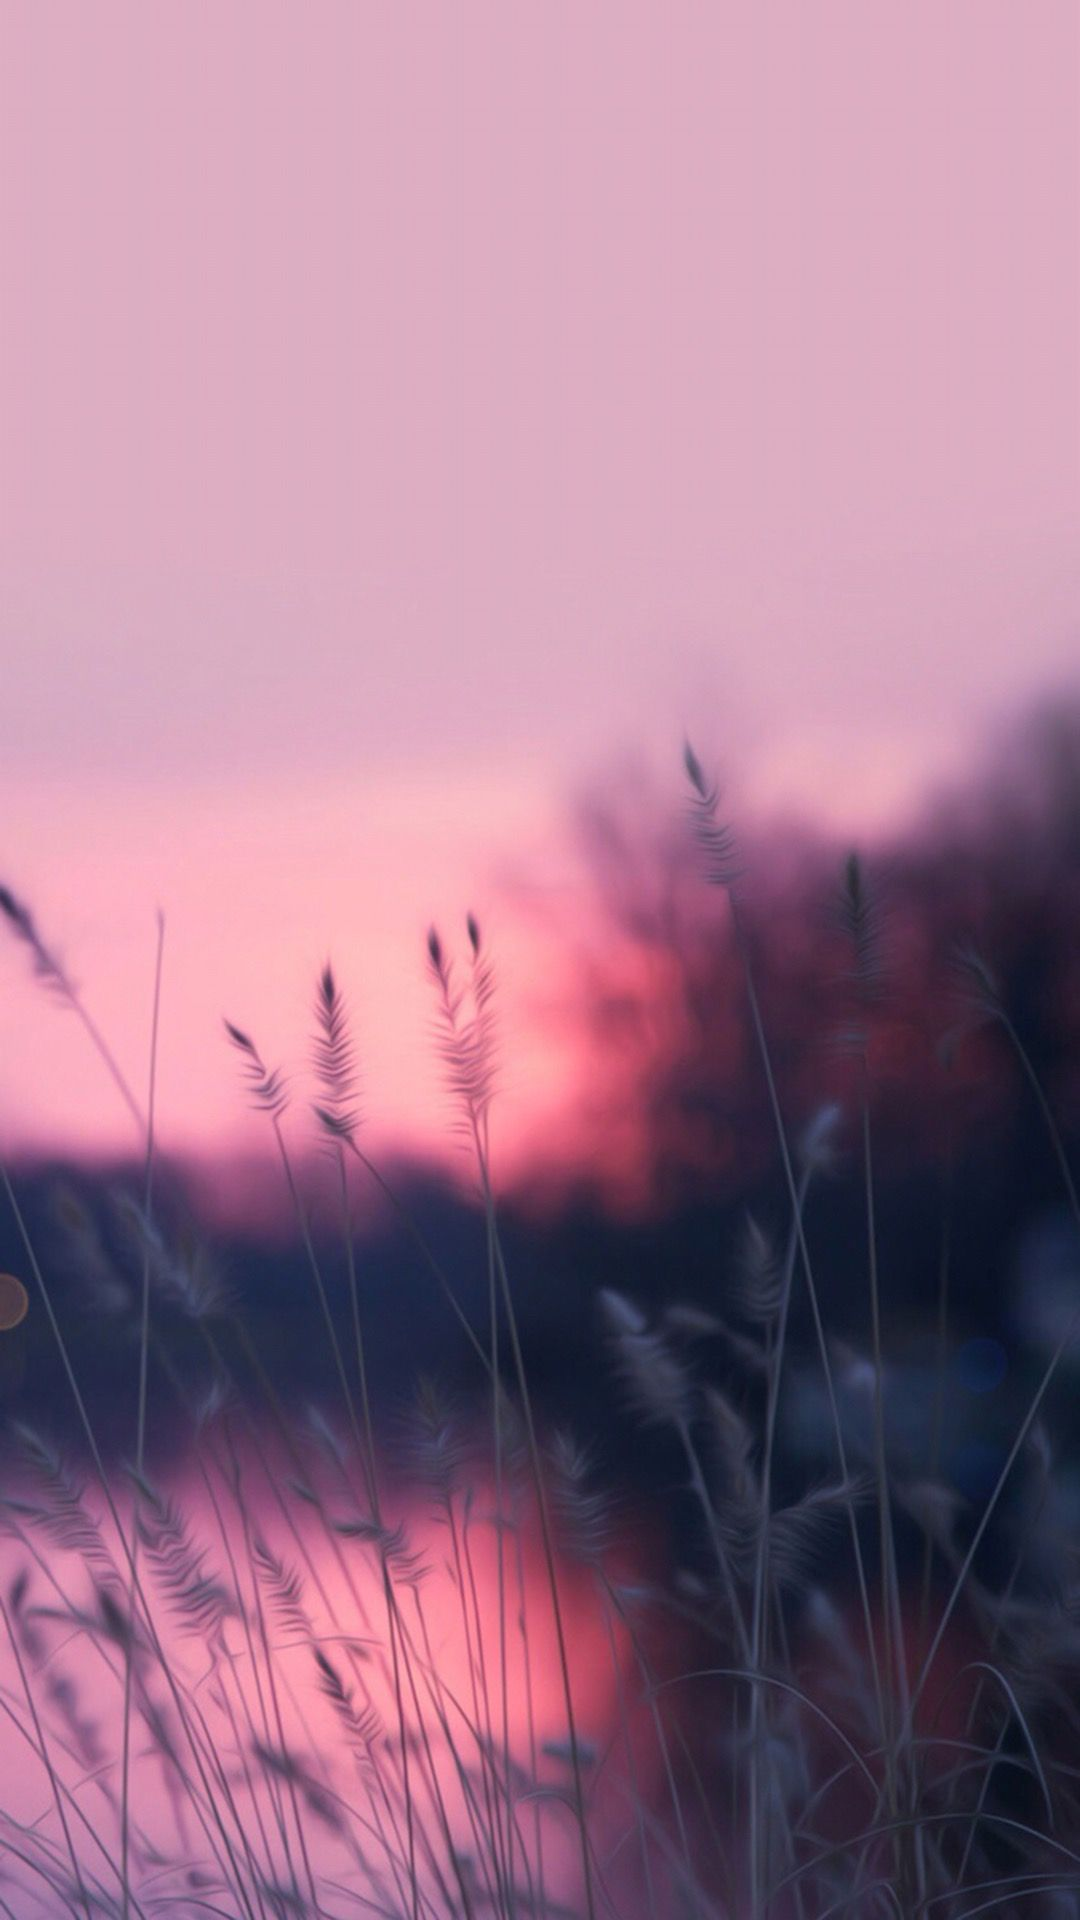 Pin de 650609 g en to live in the wonderful world iphone - Beautiful nature wallpapers for iphone ...